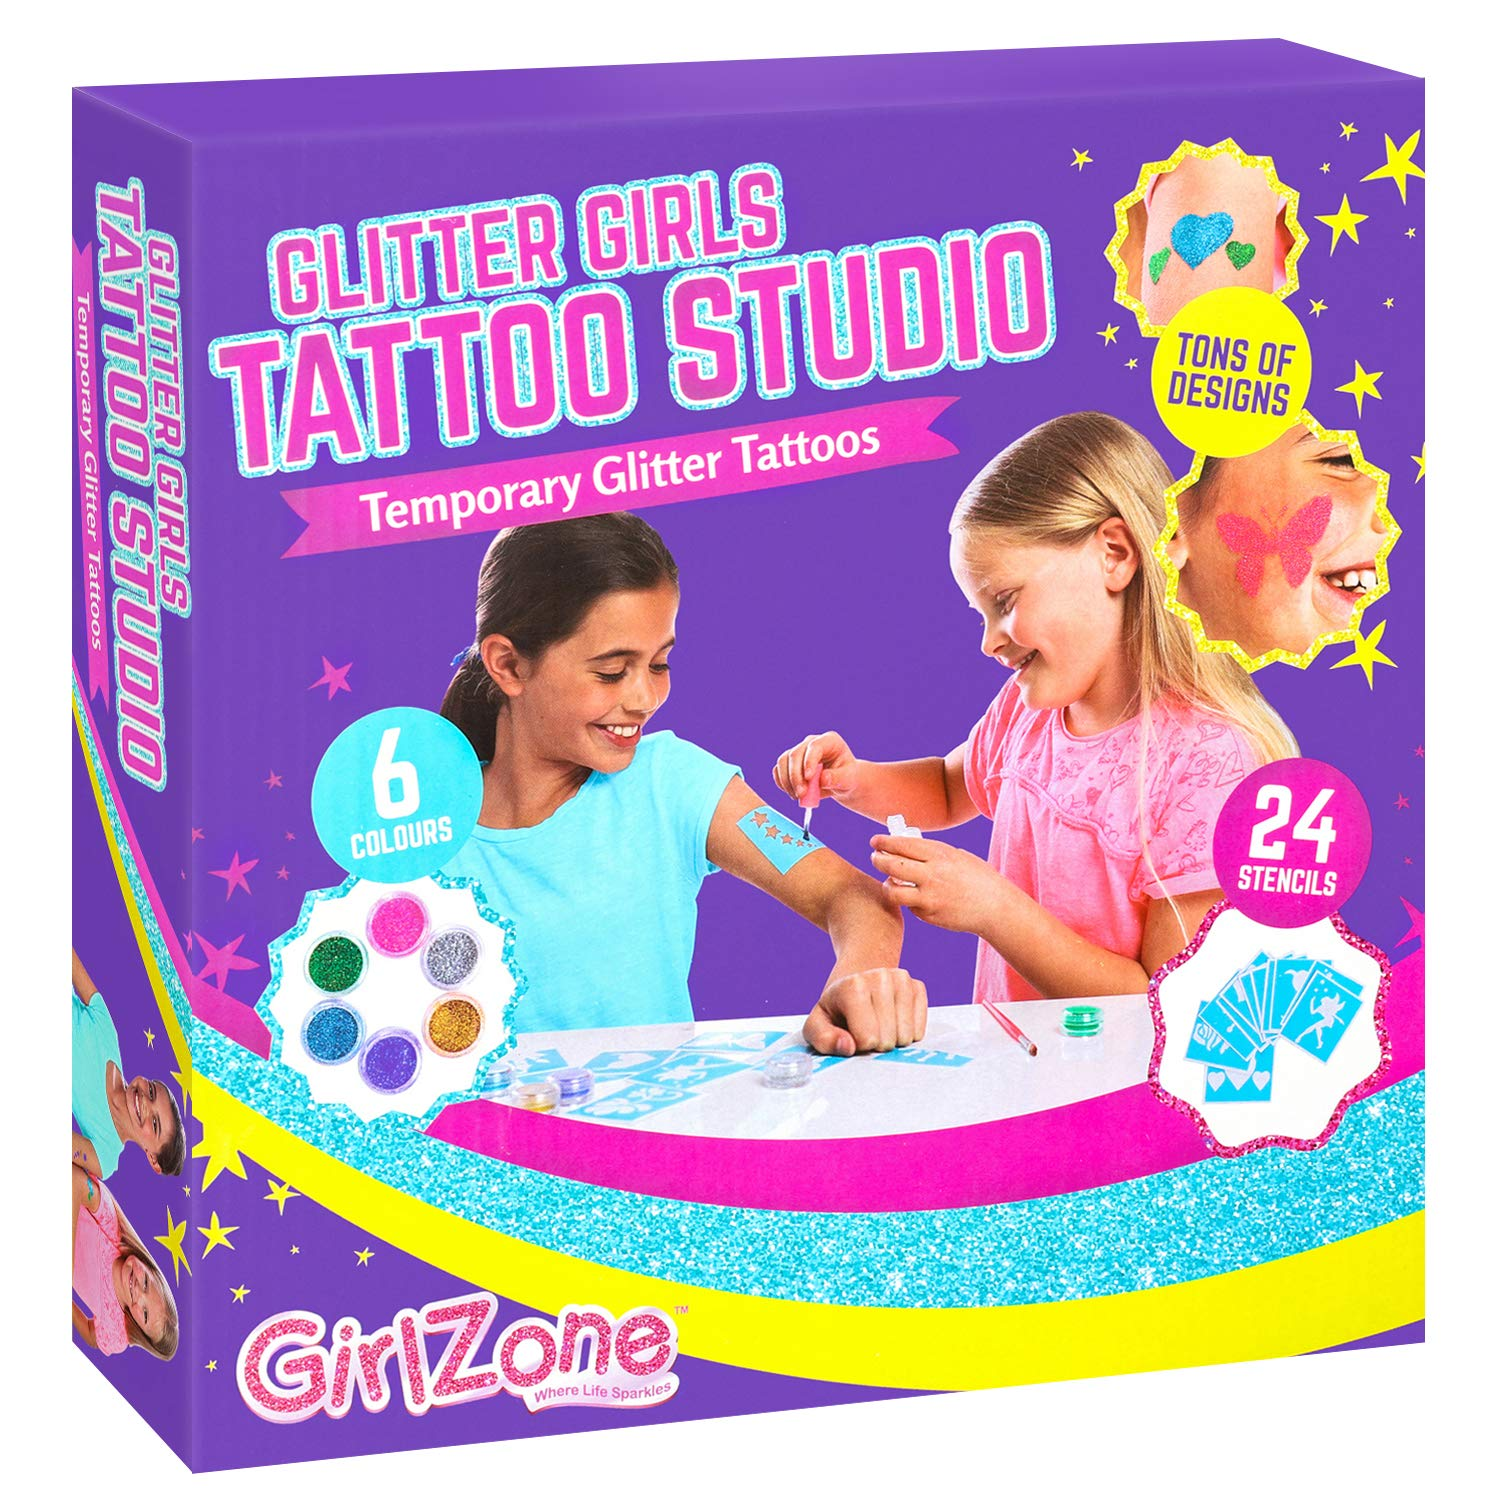 Temporary Glitter Tattoos Kit Including 33 Pieces, Best Birthday Present Idea for Girls of All Ages by GirlZone